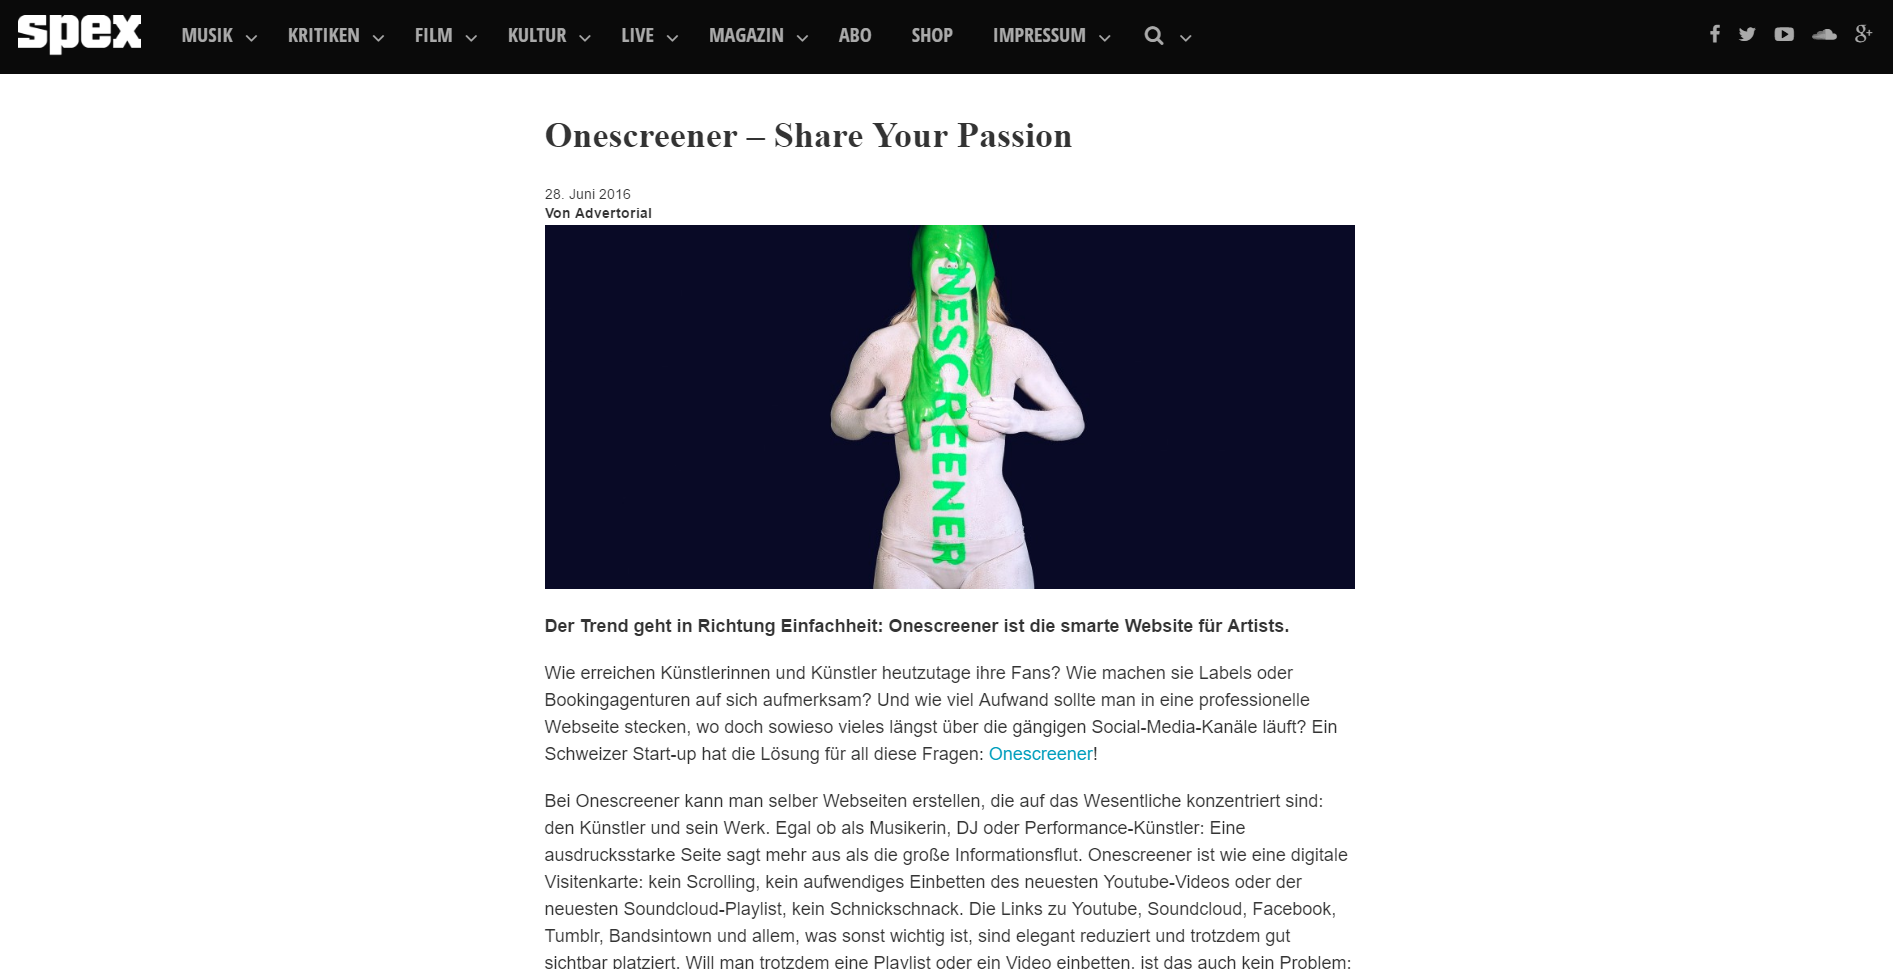 onescreener - share your passion